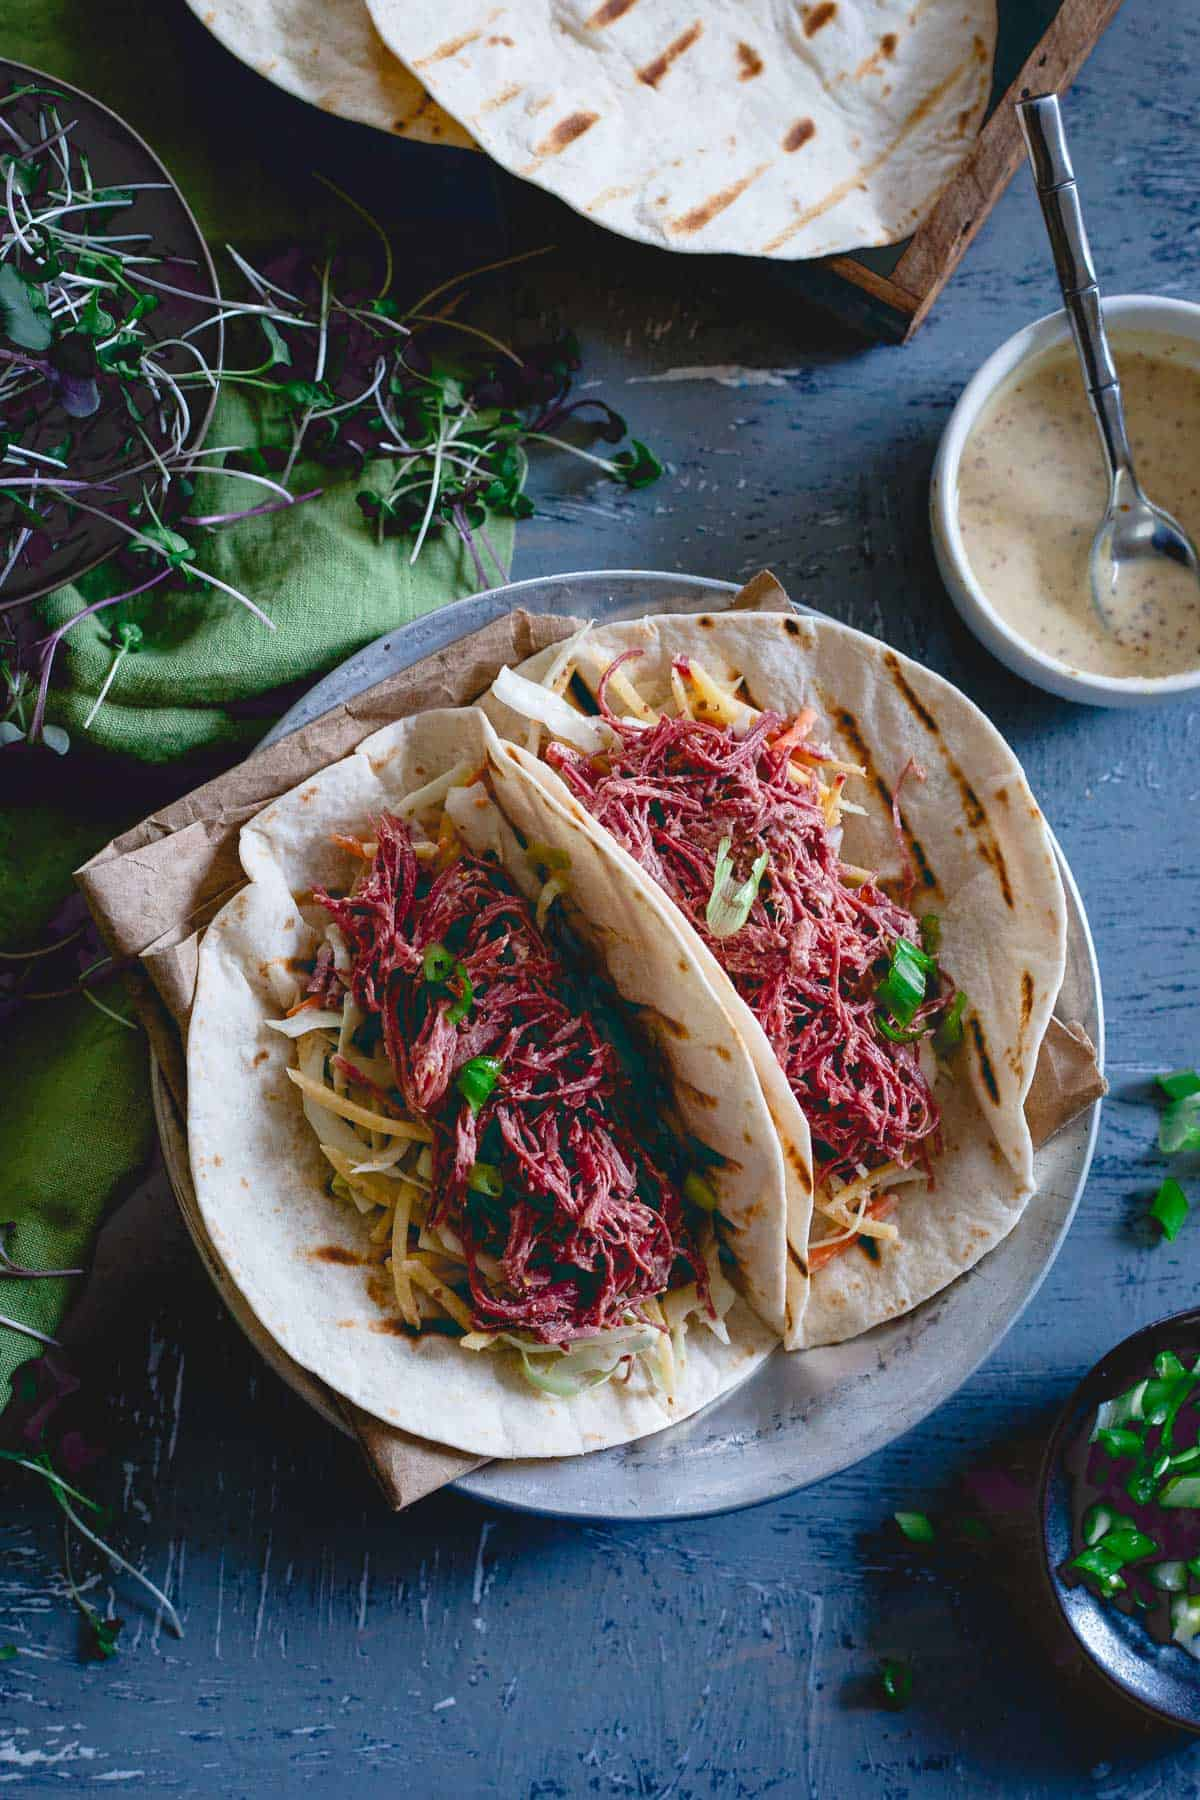 Corned beef tacos are served with a carrot cabbage slaw both tossed in a creamy spicy mustard sauce.